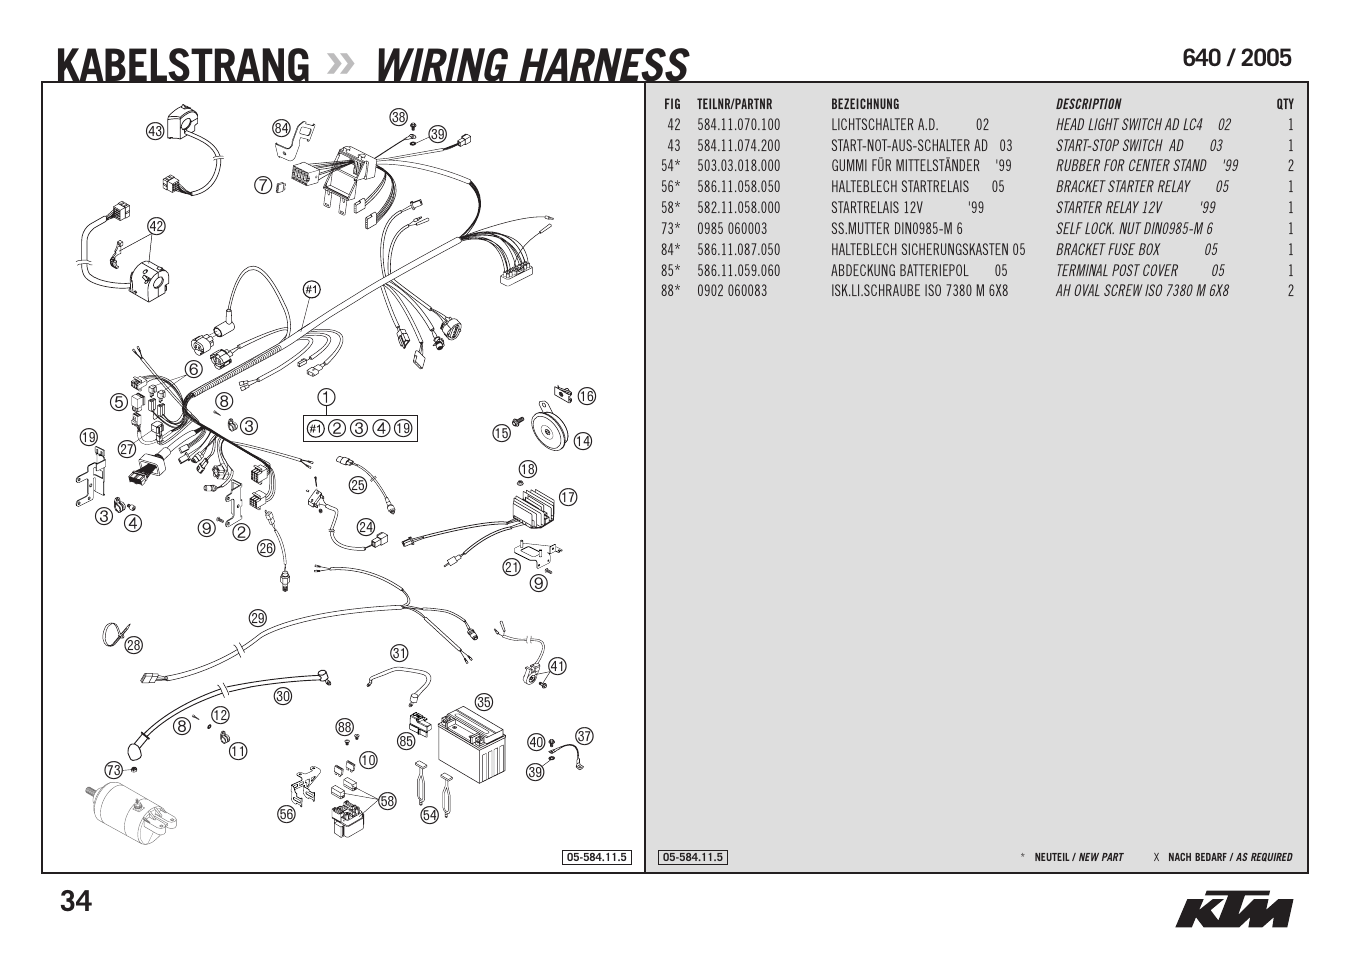 Kabelstrang  Wiring Harness